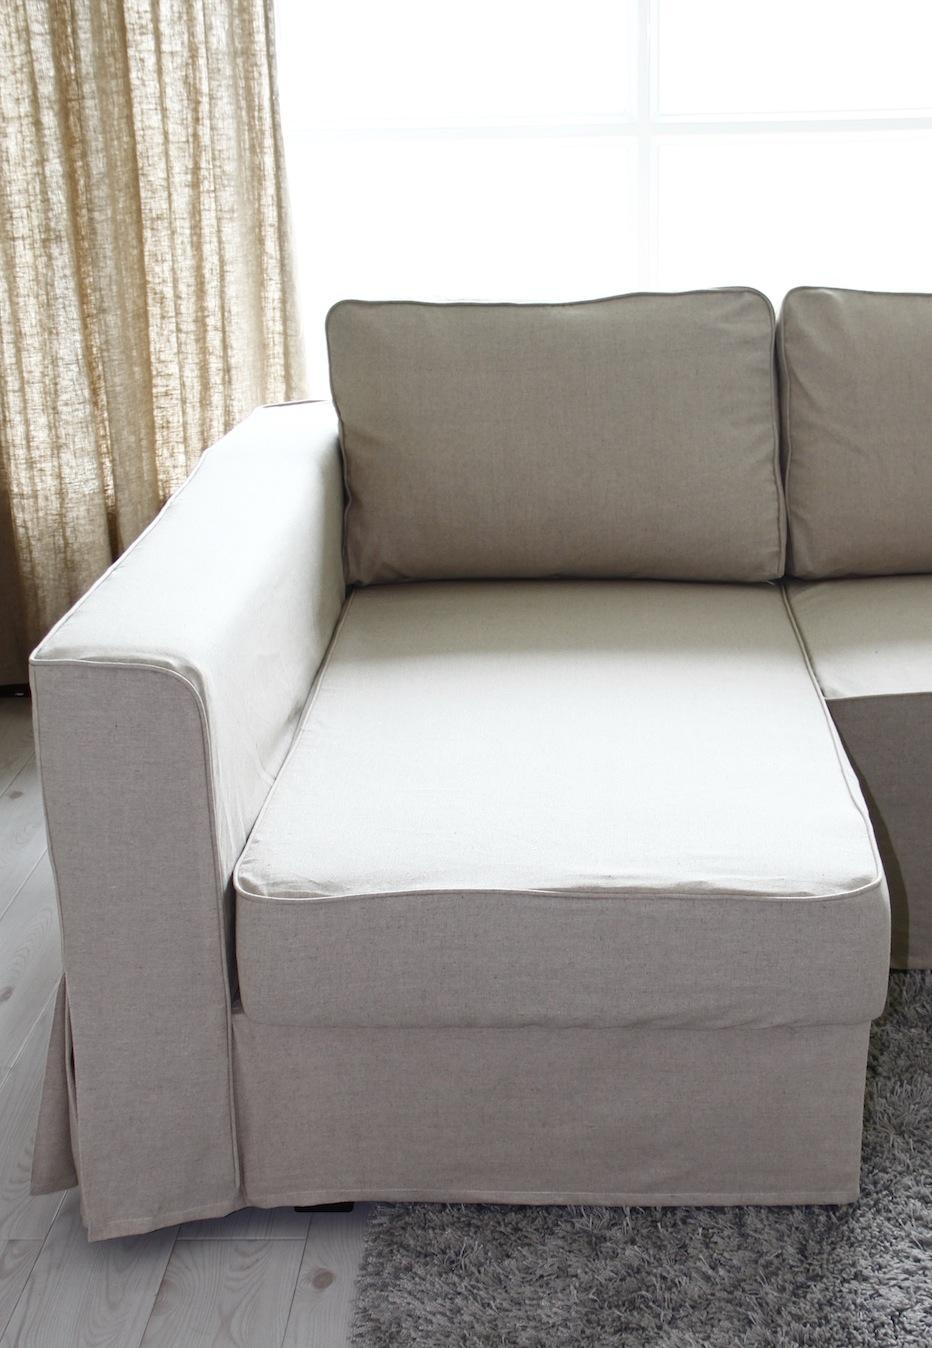 Furniture & Rug: Charming Slipcovers For Sofas With Cushions In Armless Couch Slipcovers (View 9 of 20)